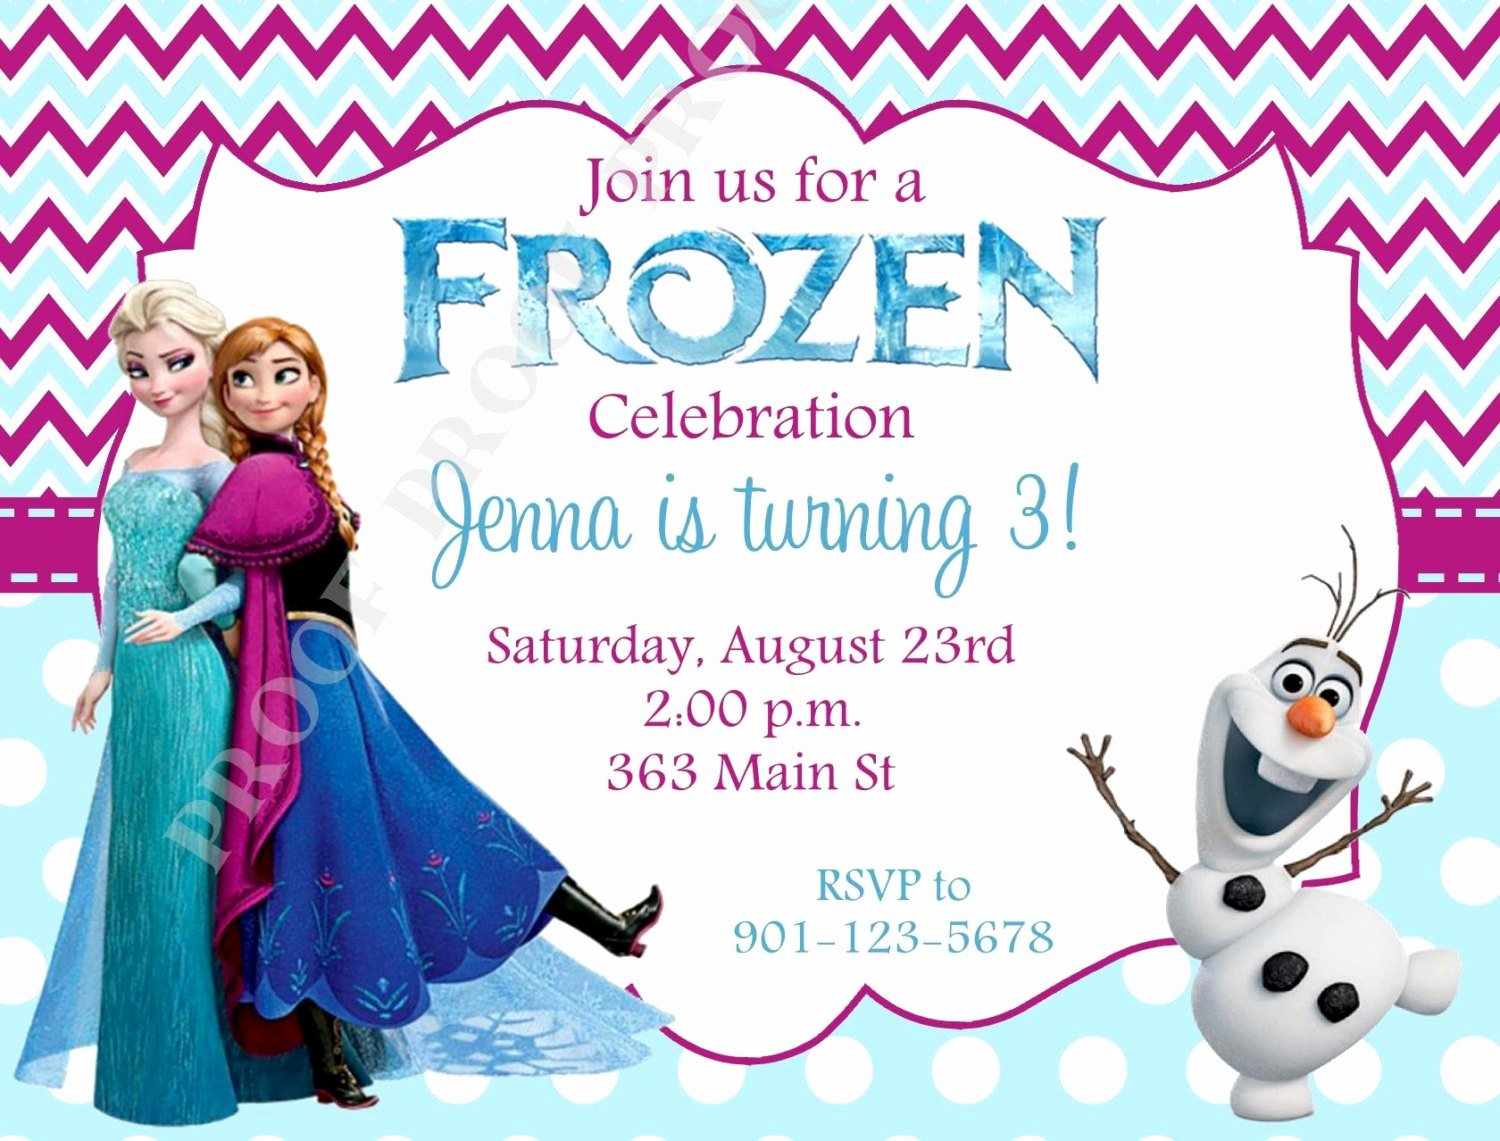 Frozen Invitations Template Free Awesome 10 Printed Frozen Invitations with Envelopes Free Return